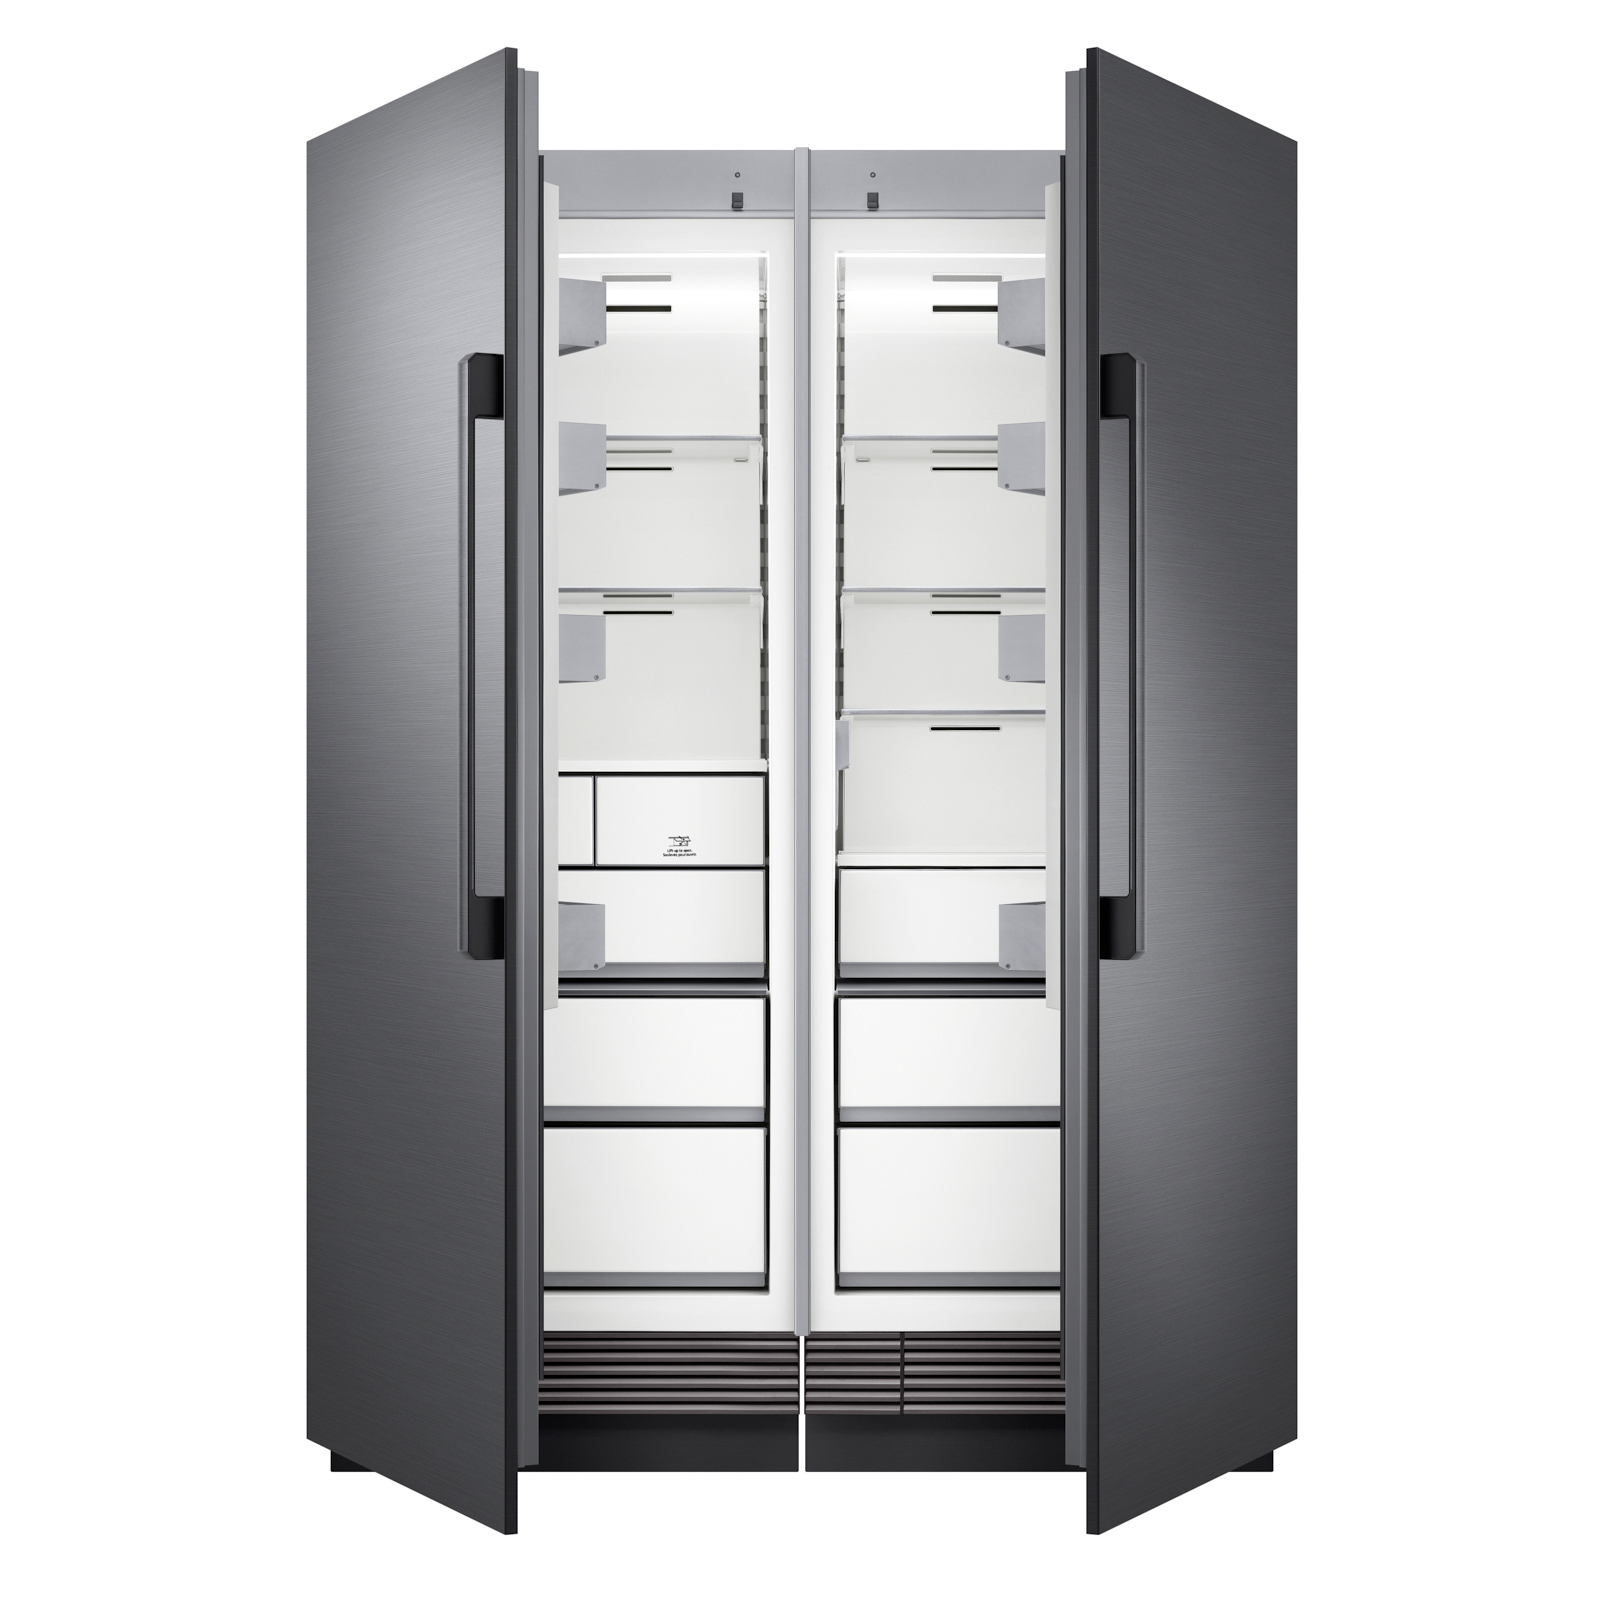 DRR30990RAP(DRZ30990LAP)_004_Fridge-Freezer_Front_Half-Open_Black.jpg